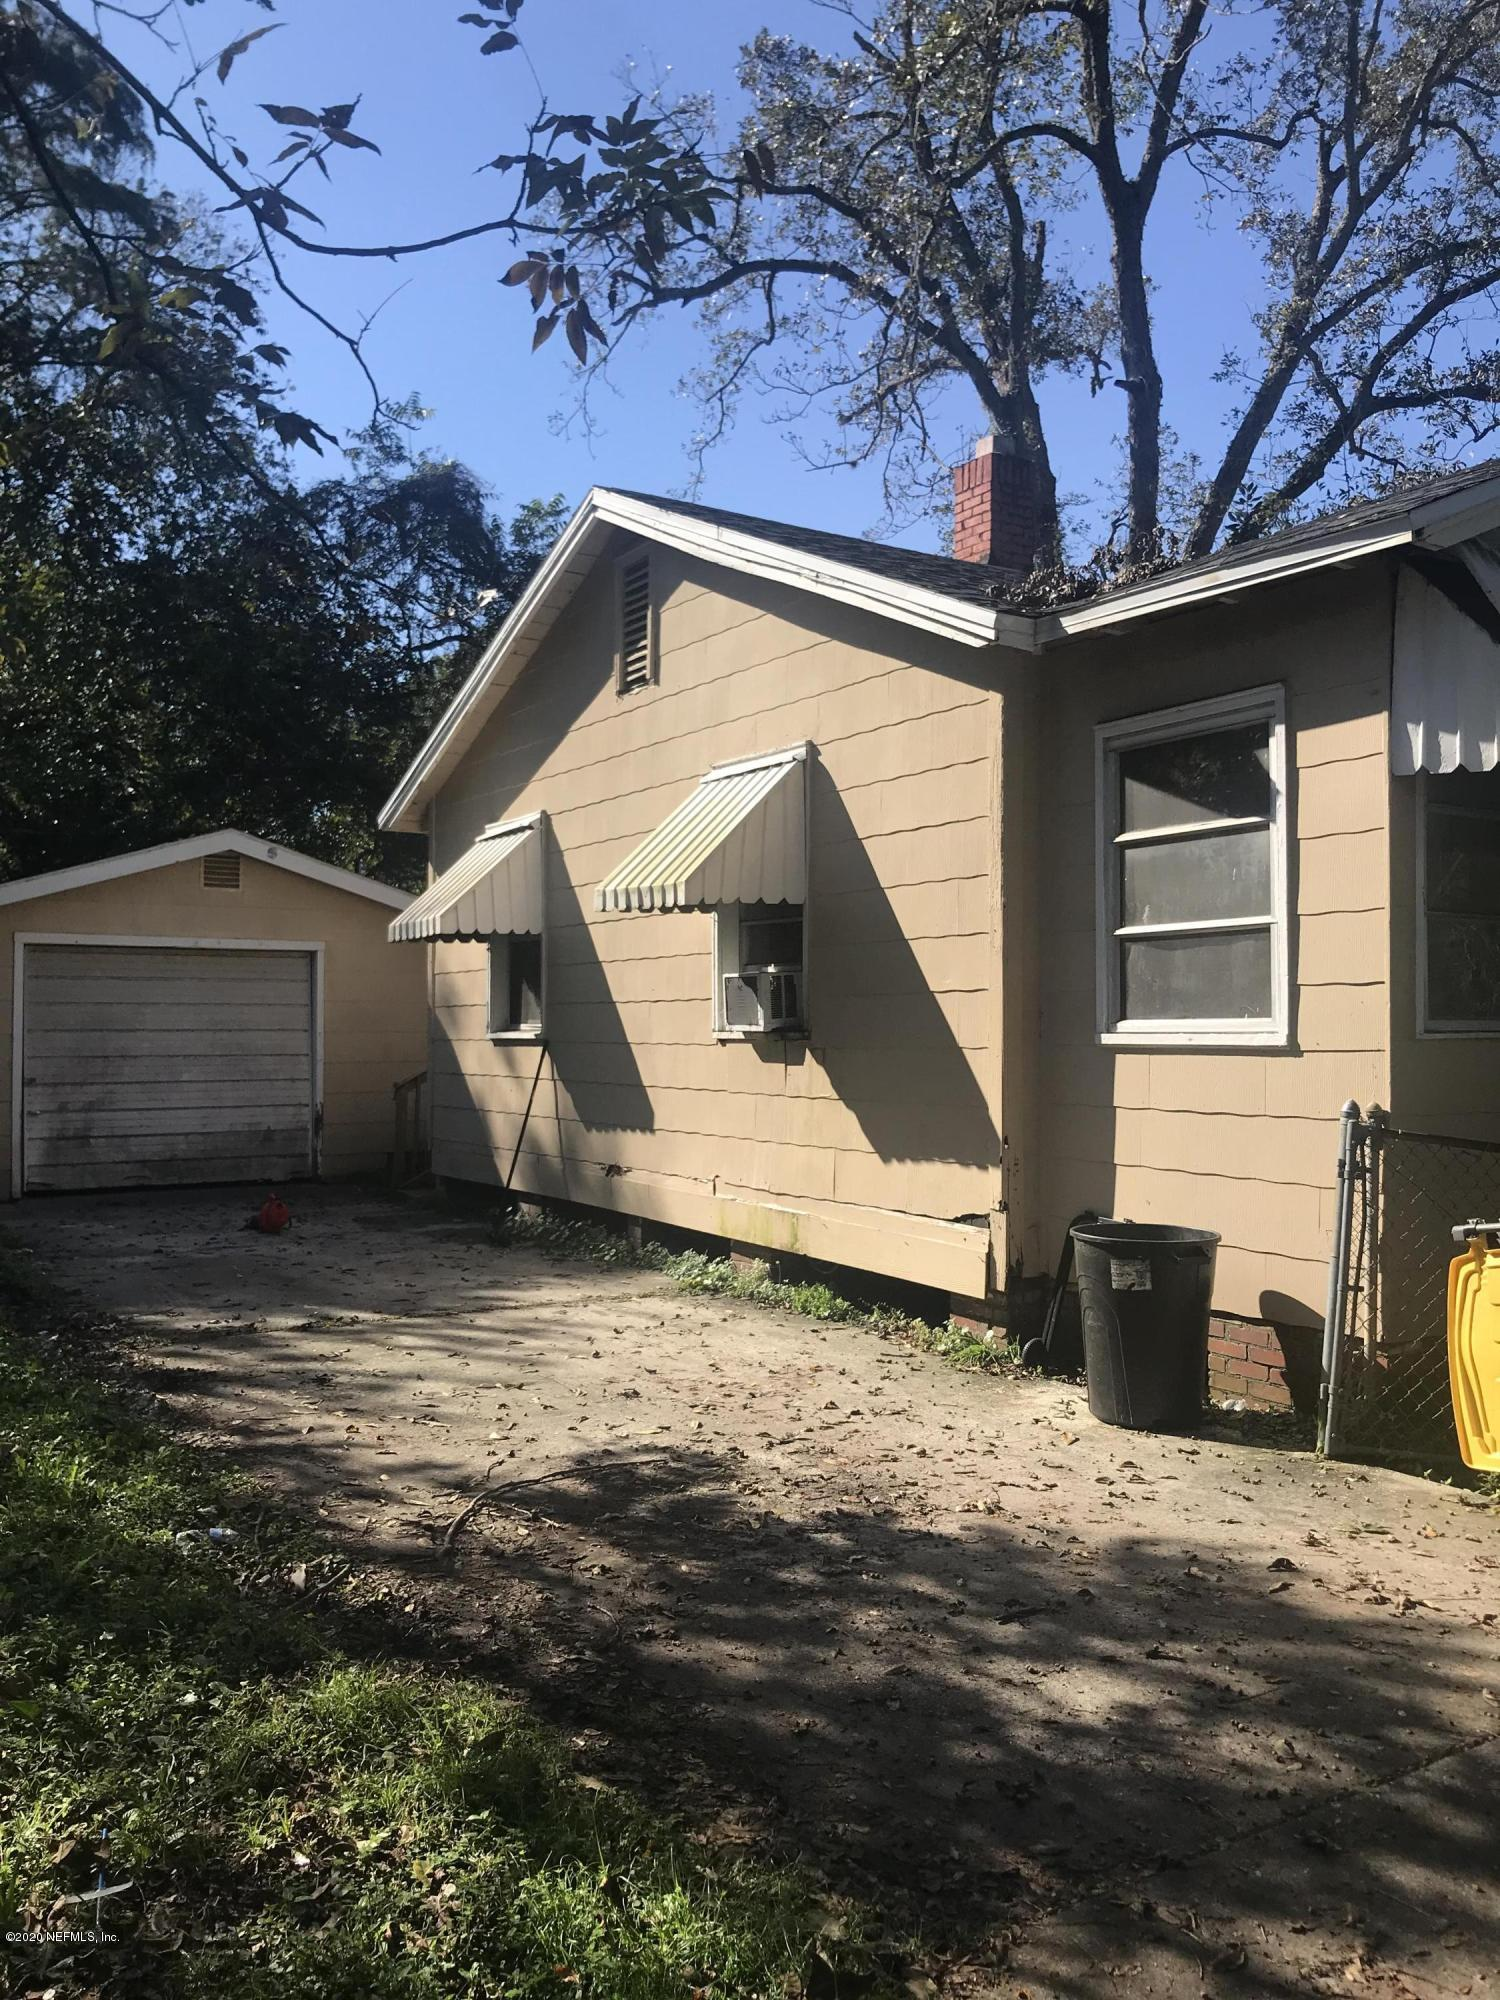 1010 31ST, JACKSONVILLE, FLORIDA 32209, 2 Bedrooms Bedrooms, ,1 BathroomBathrooms,Residential,For sale,31ST,1016928